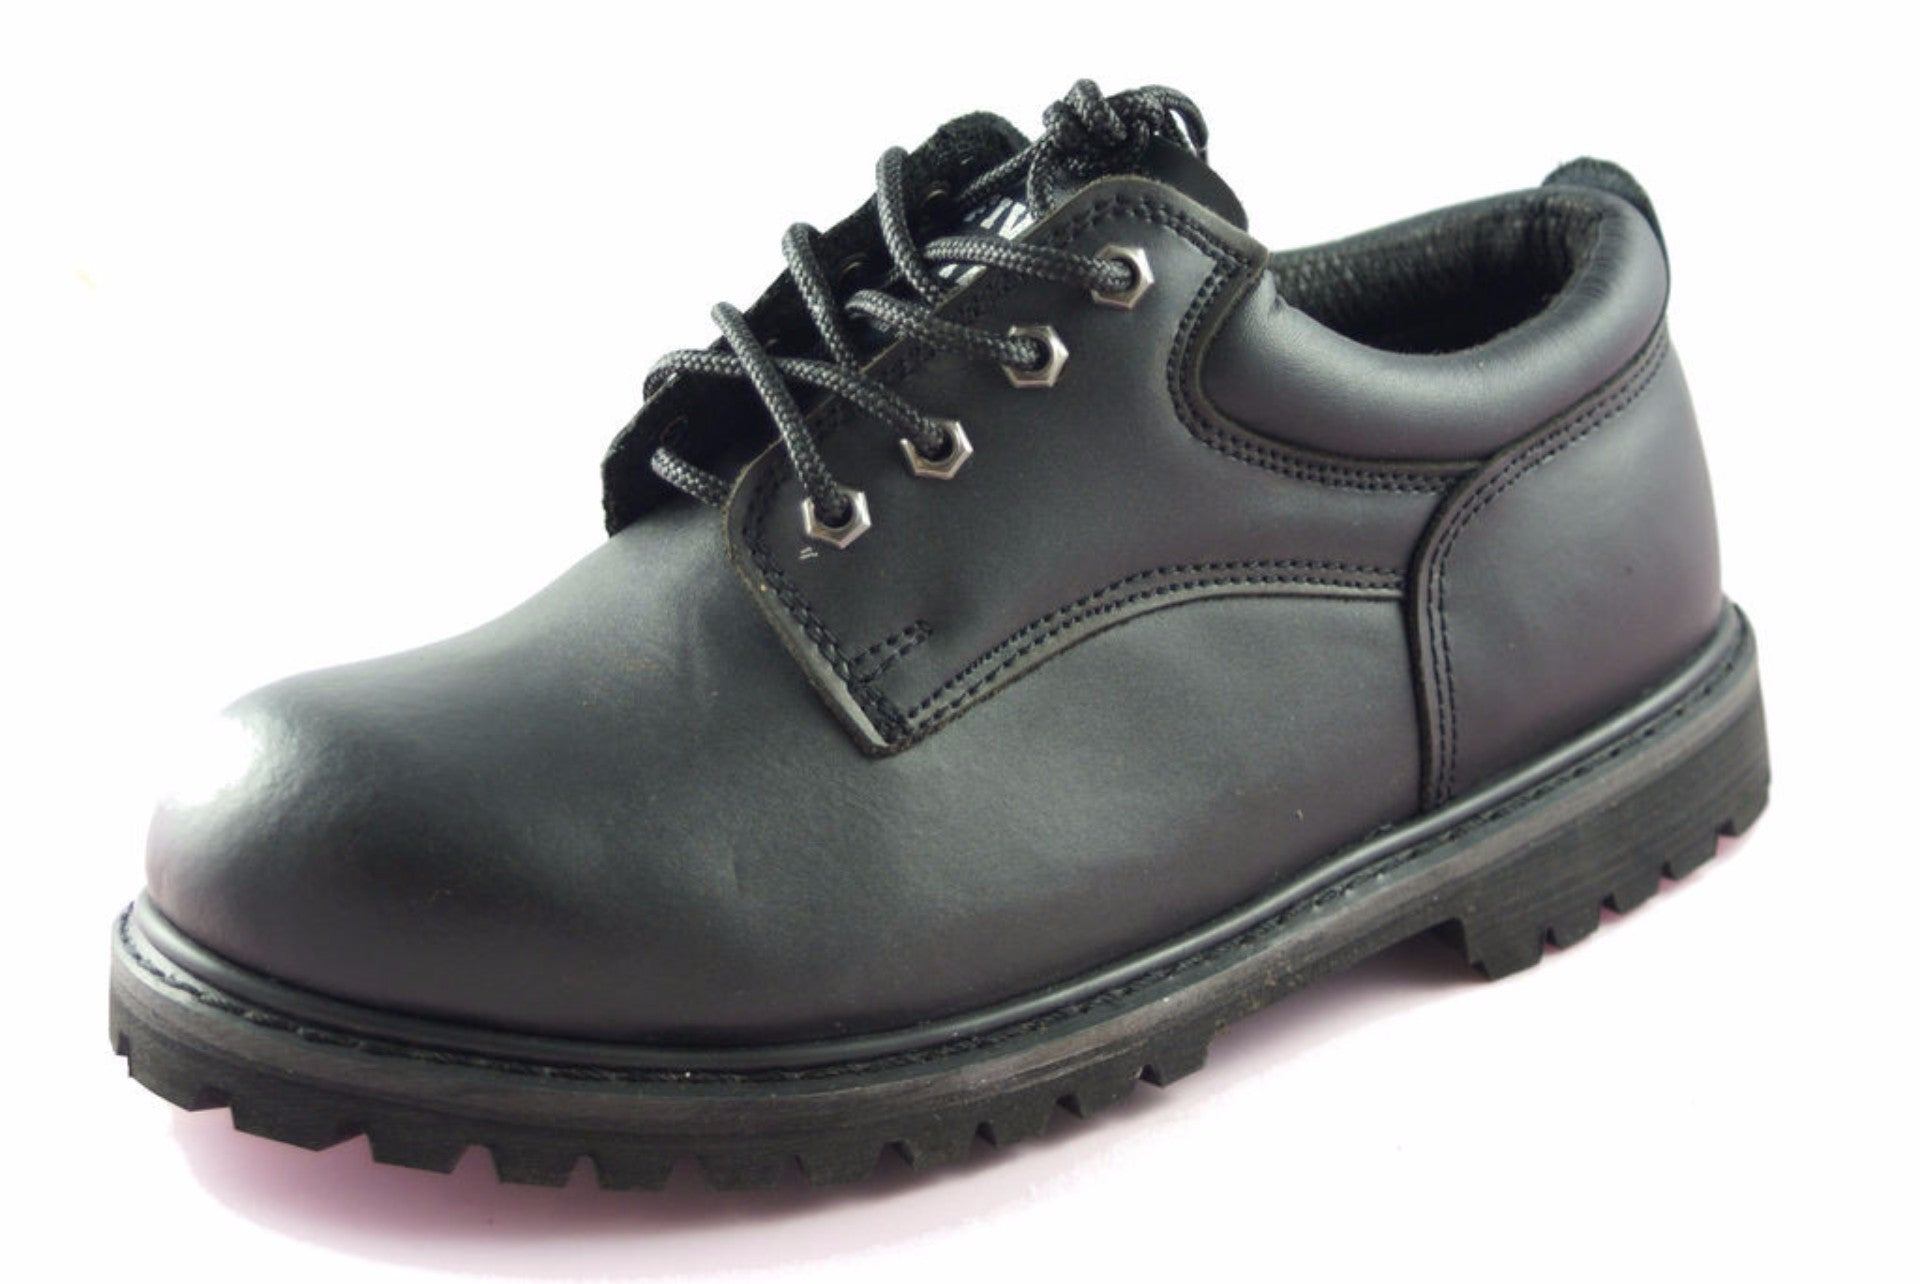 ca22ac30a5cb SRS Steel Toe Men s Slip Resistant Work Safety Lace up Shoes - Slip  Resistant Shoe